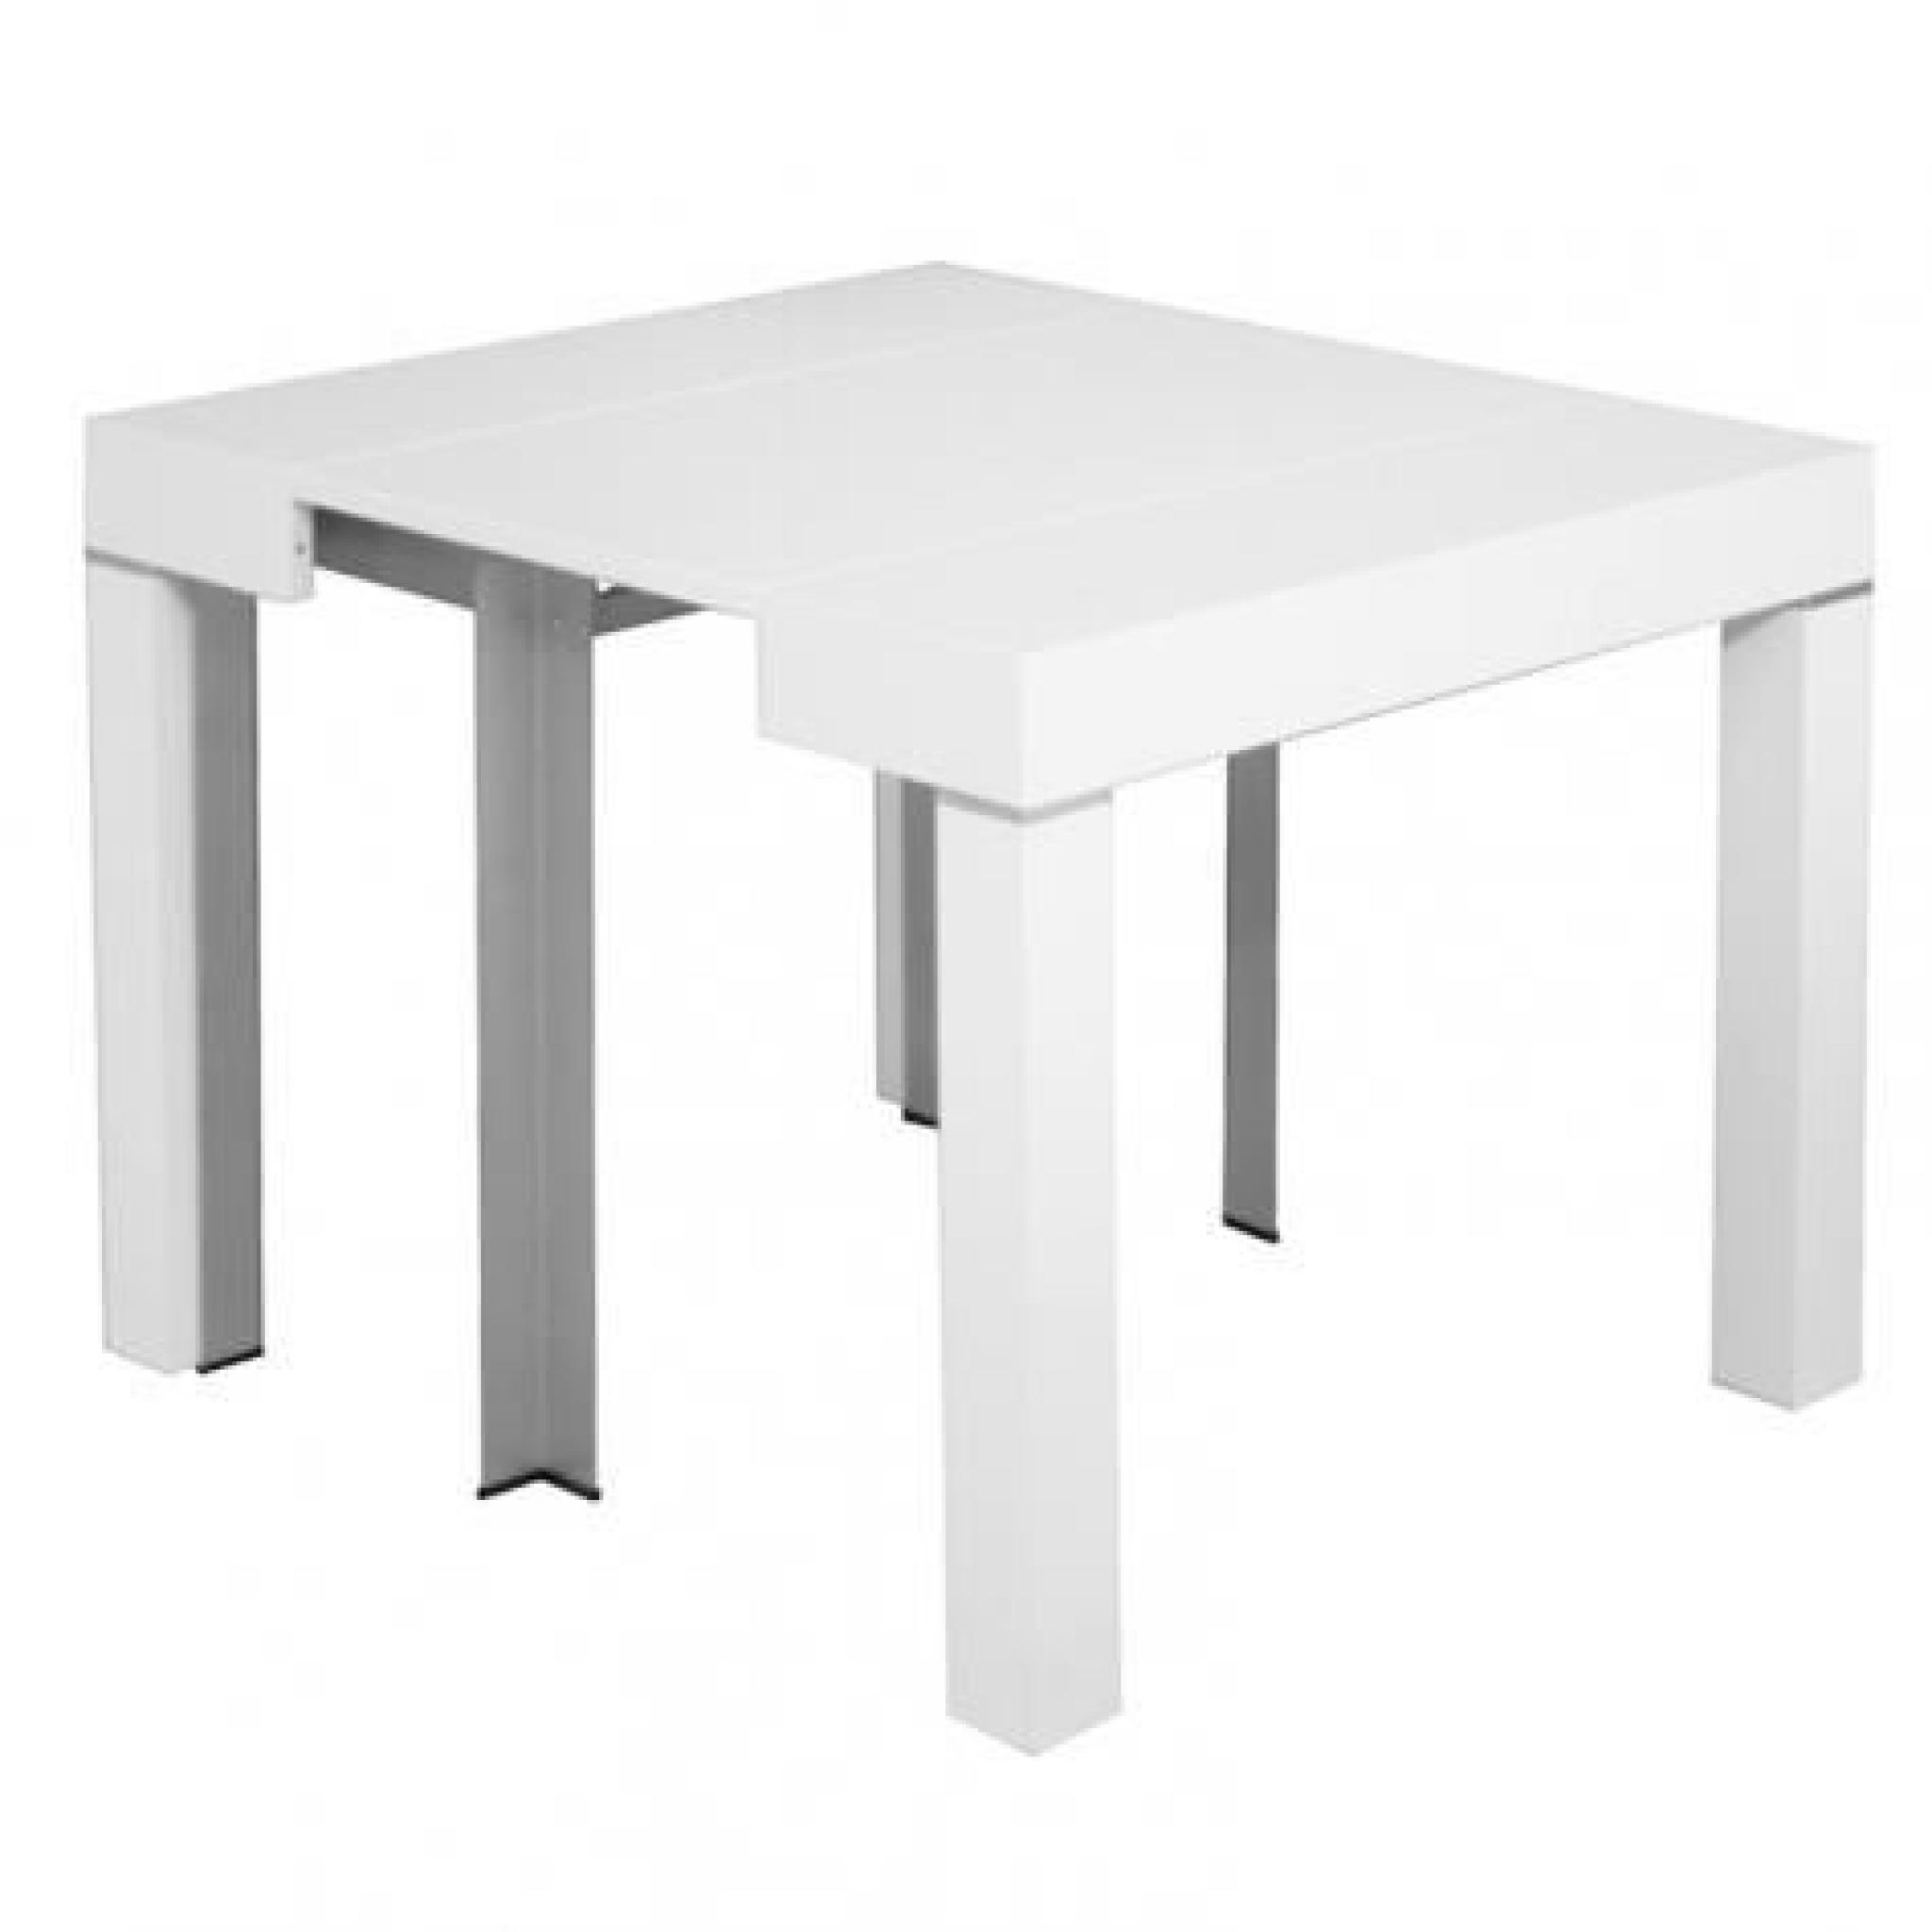 Table laquee blanche extensible 28 images table for Table a manger blanche extensible